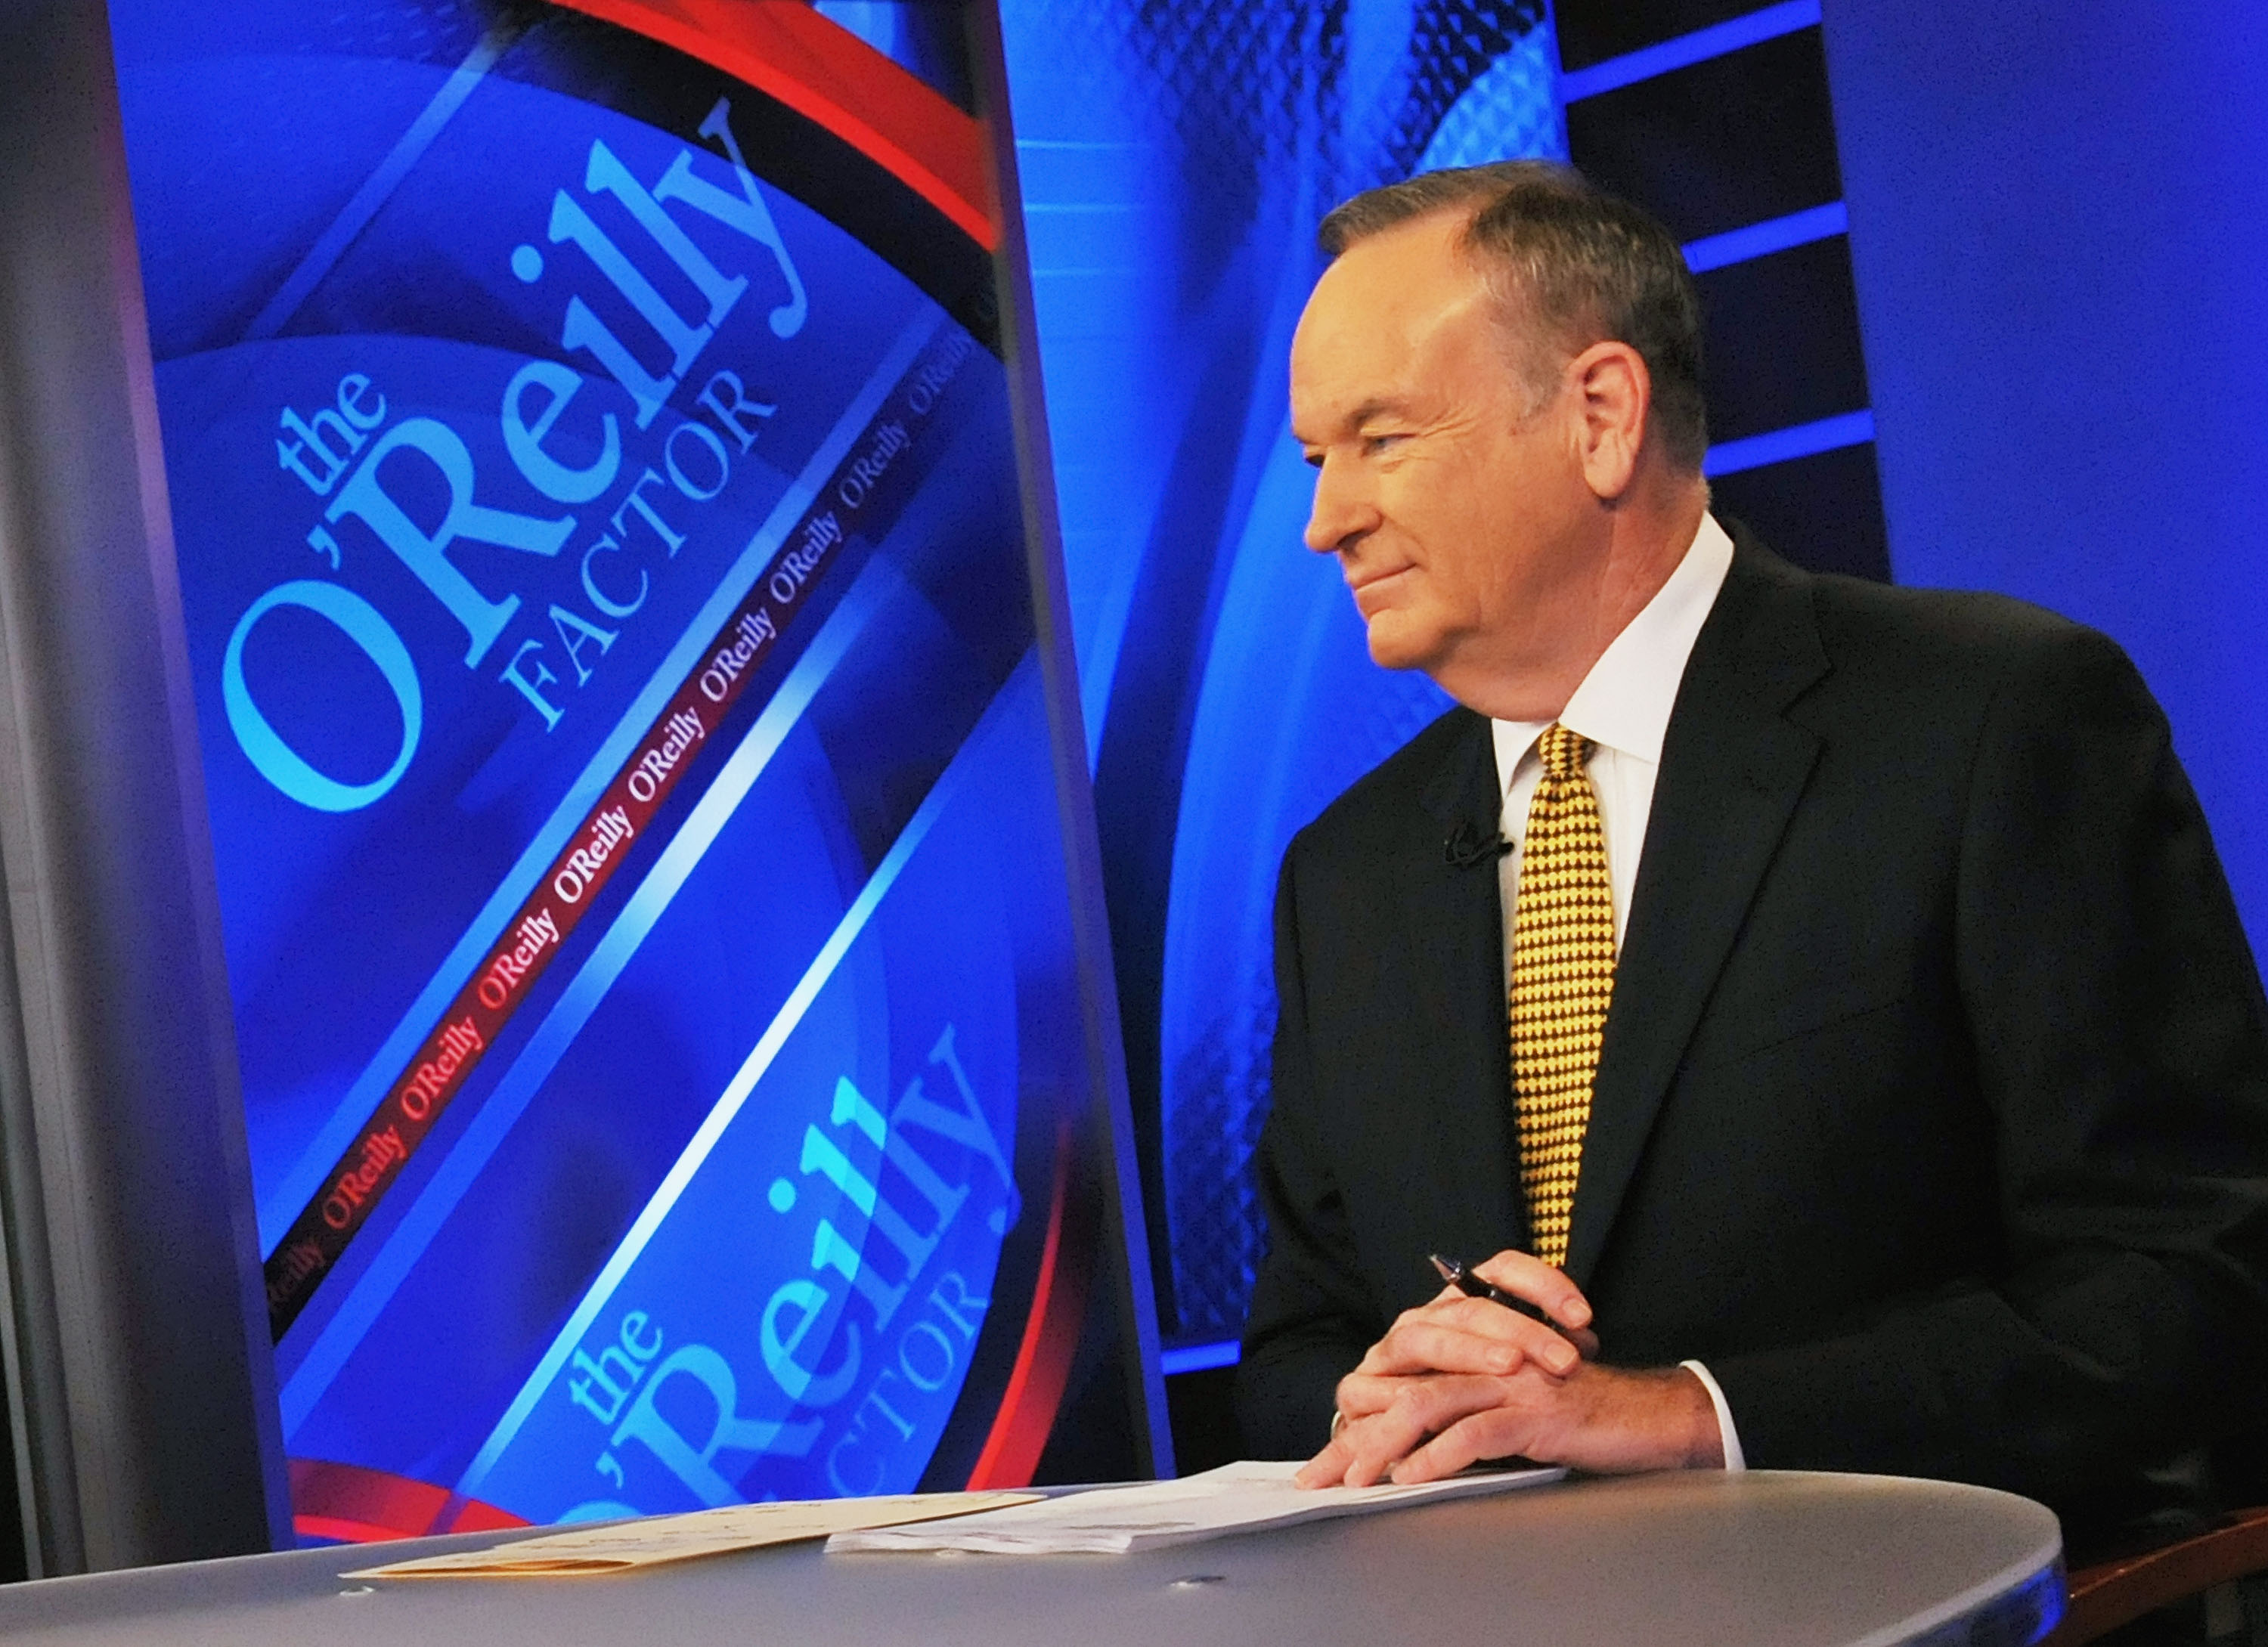 Bill O'Reilly facts